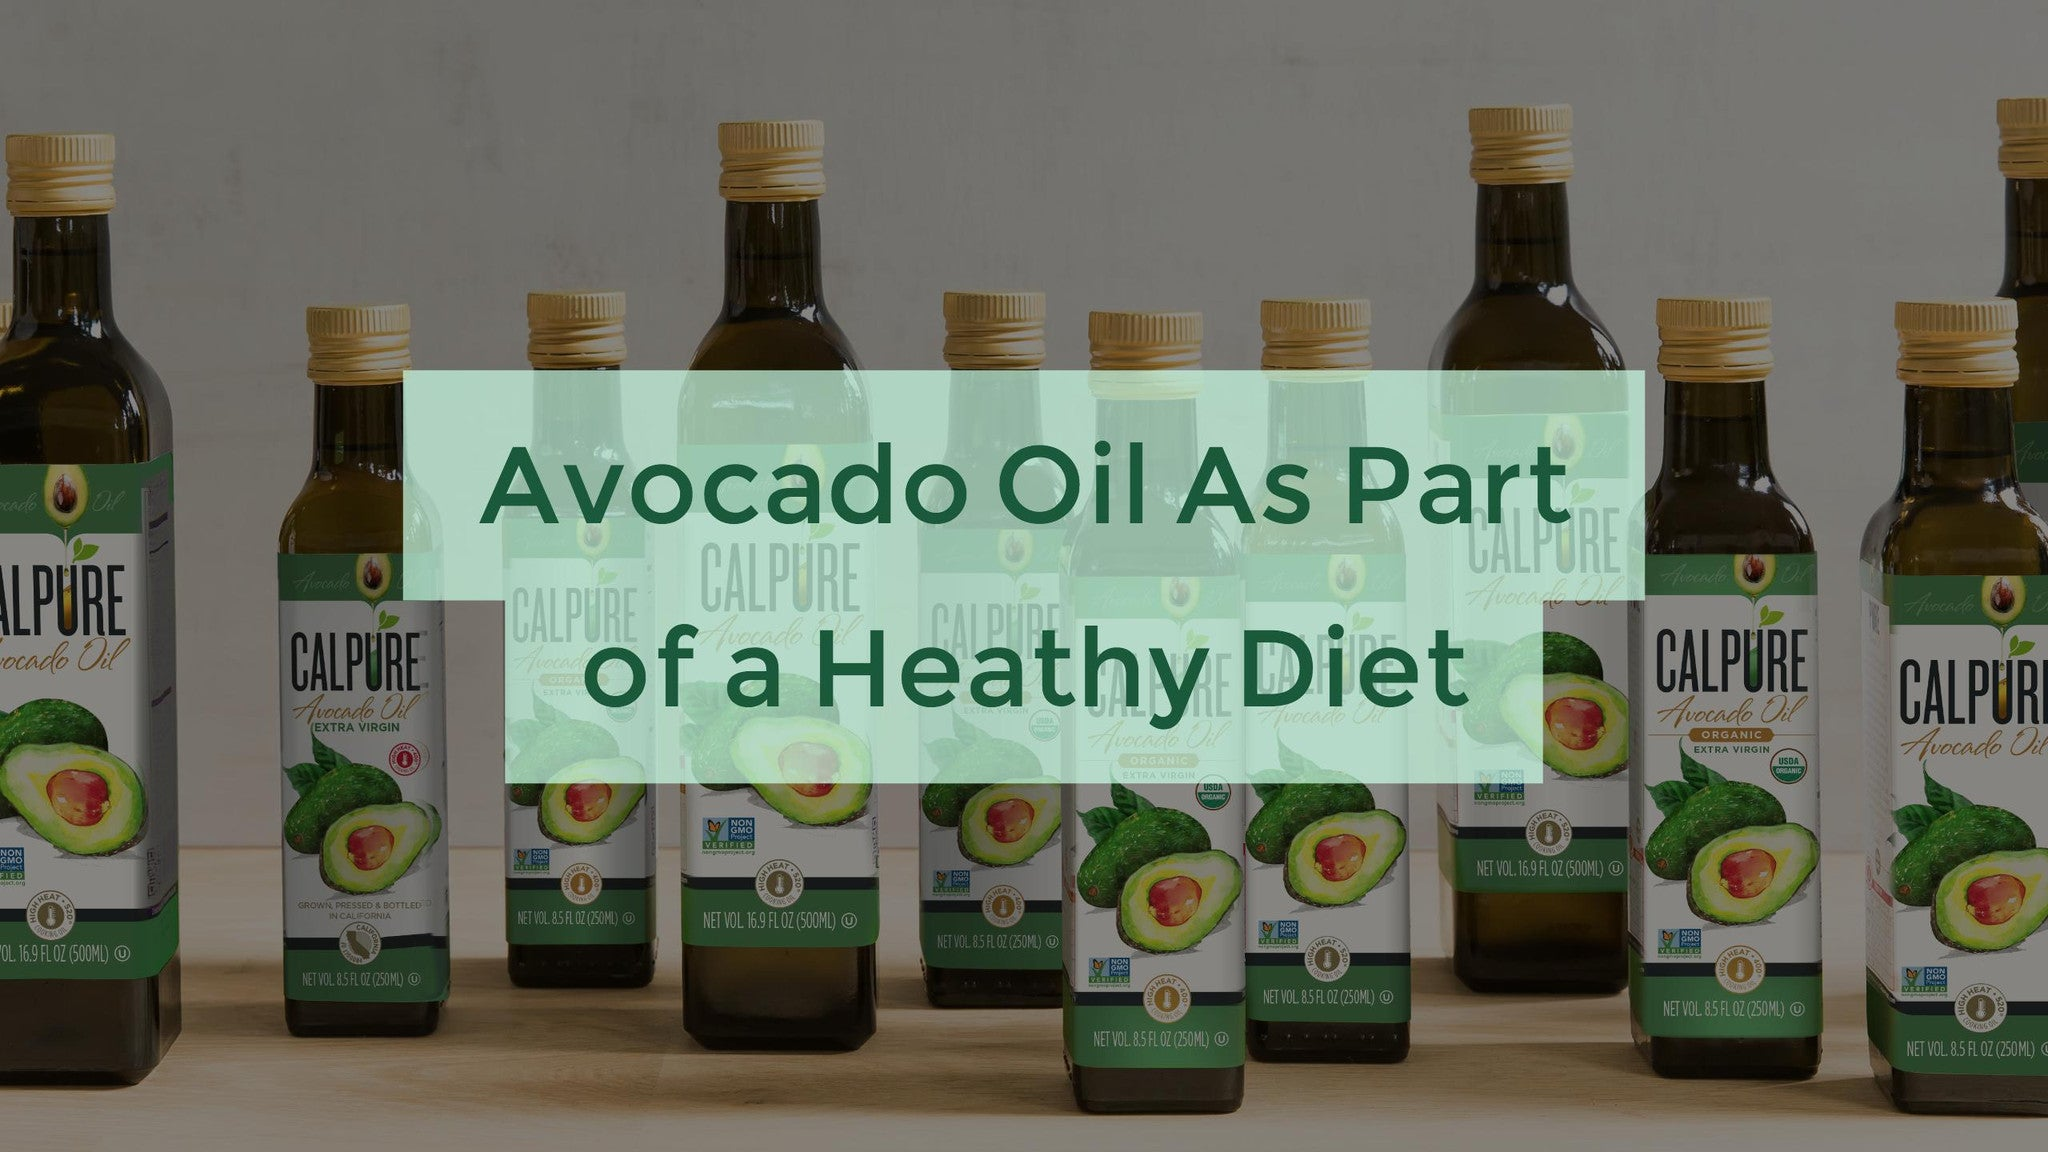 refined avocado oil versus extra virgin avocado oil